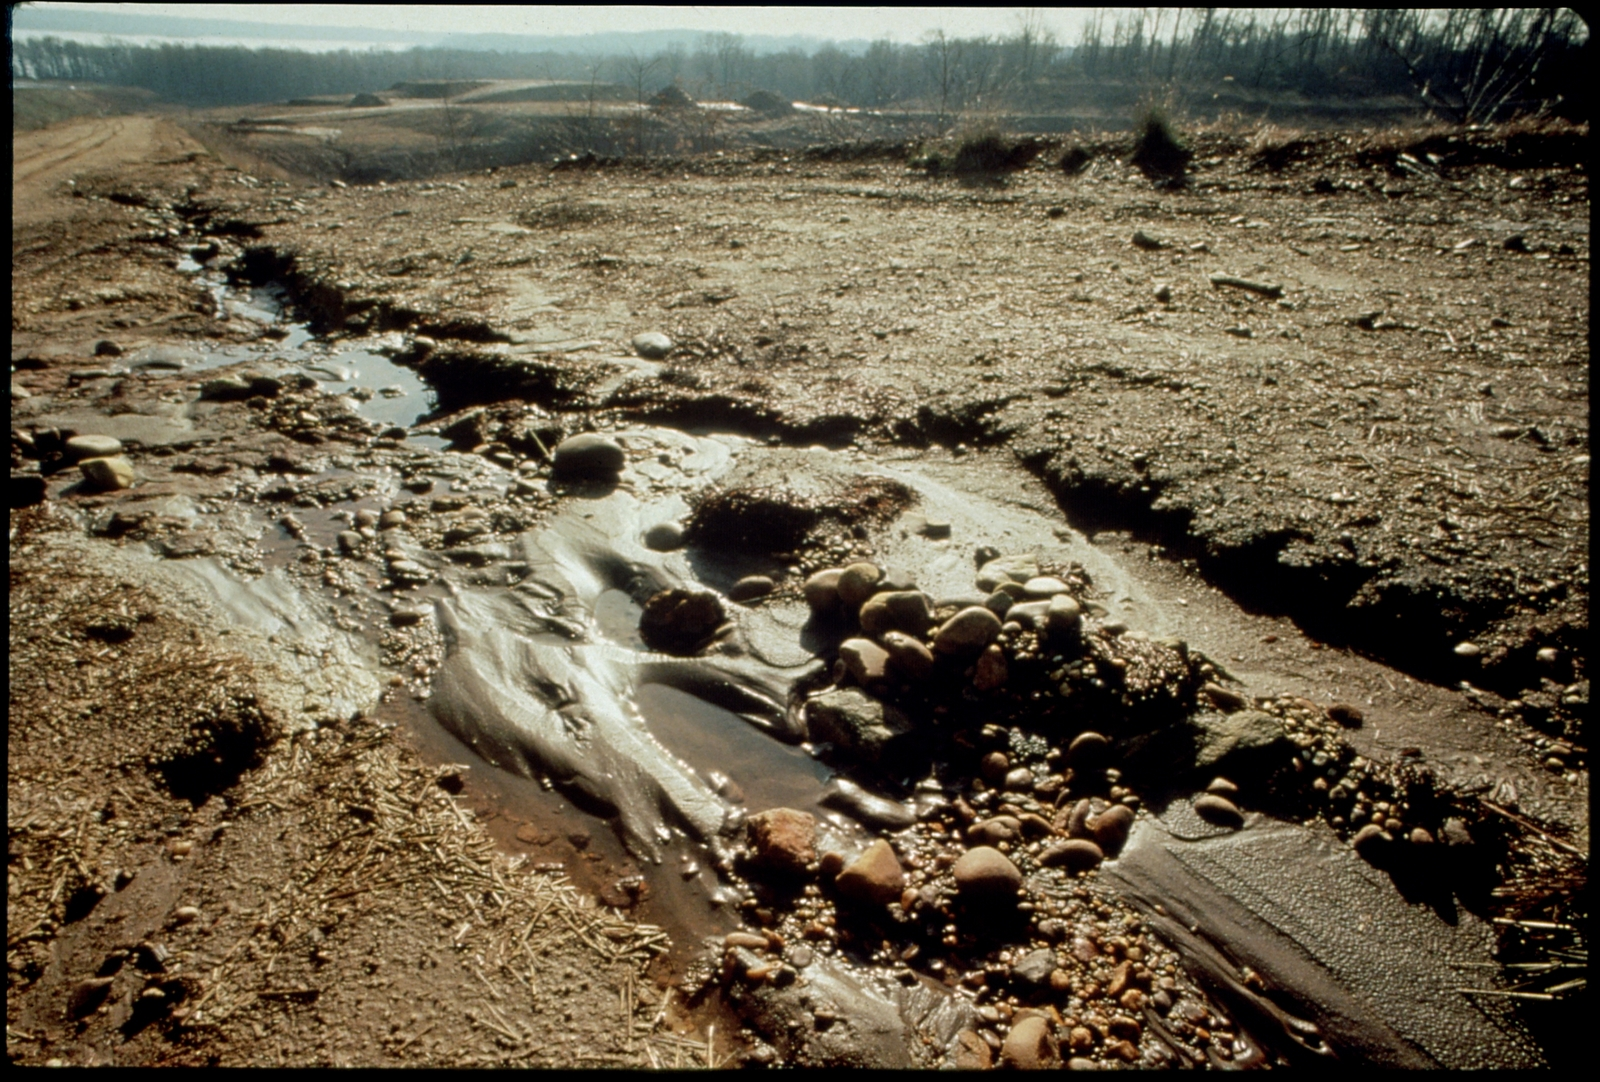 Library of Environmental Images, Office of Research and Development (ORD), September 1996 - Water - River bed